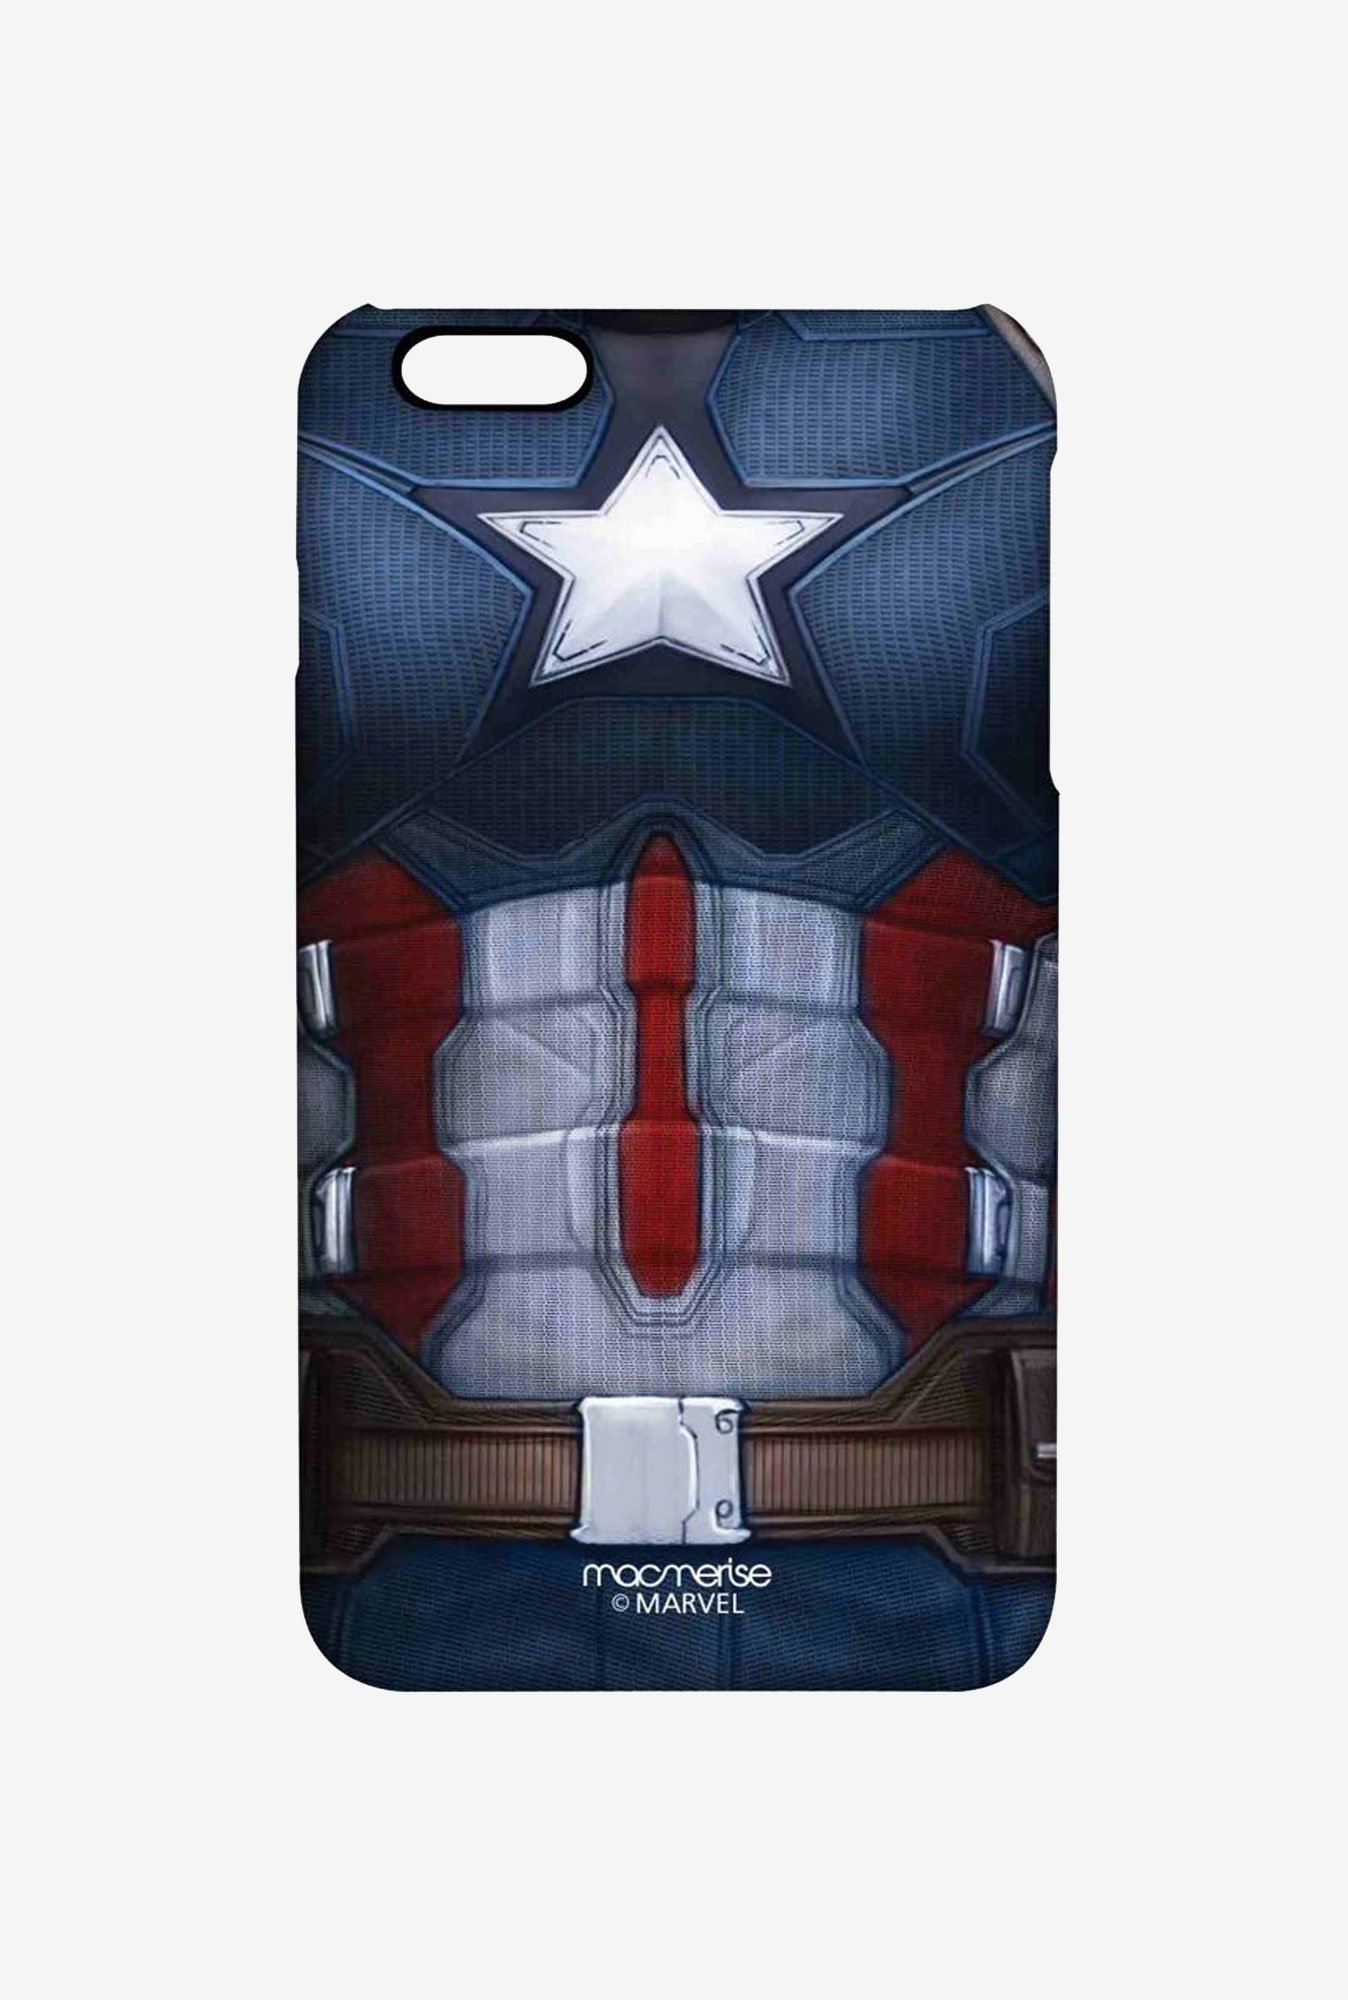 Macmerise Suit up Captain Pro Case for iPhone 6 Plus